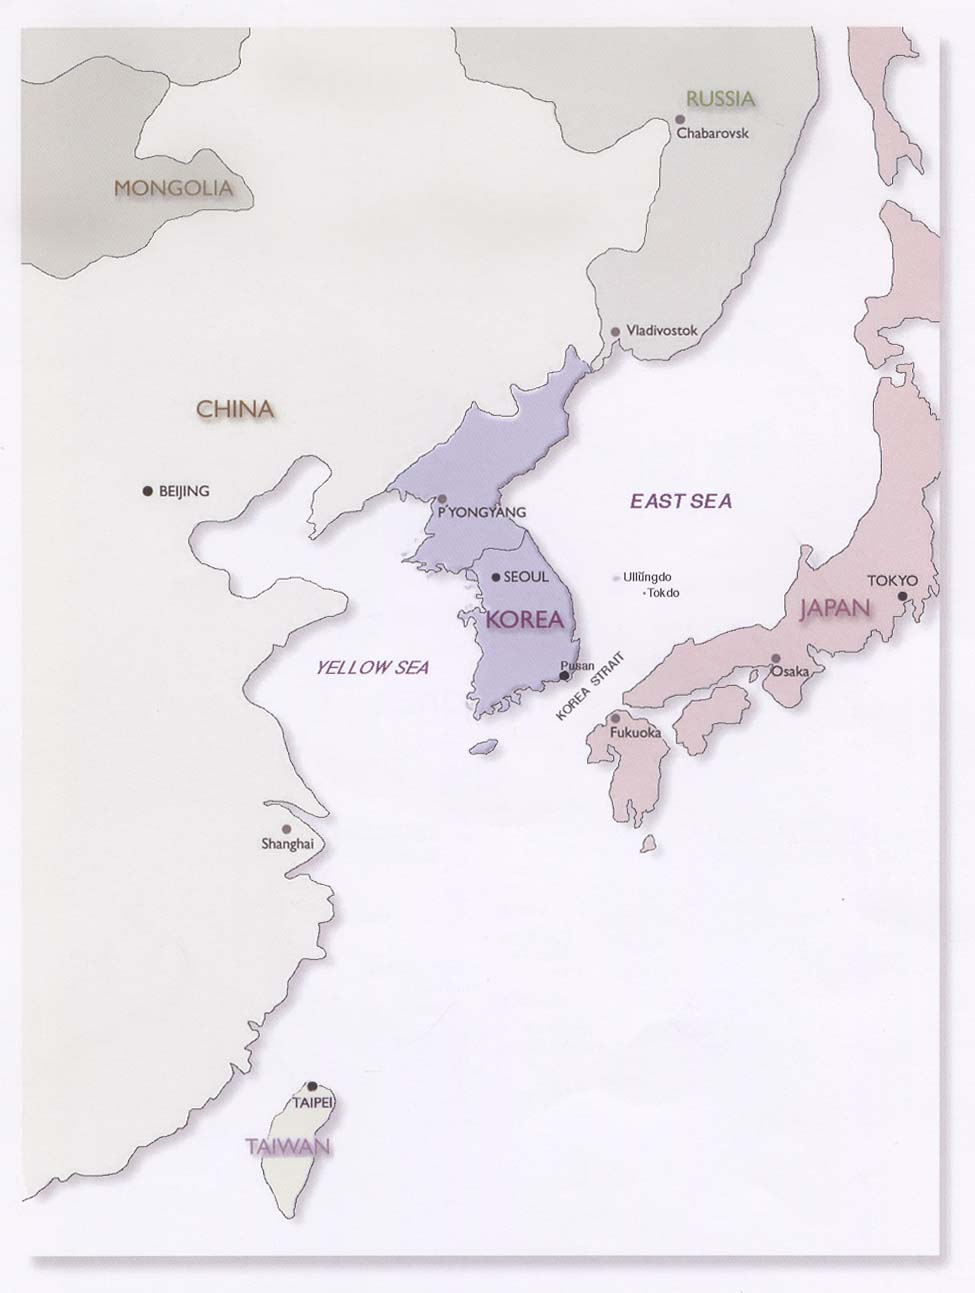 Korea maps perry castaeda map collection ut library online korean peninsula location map gumiabroncs Choice Image